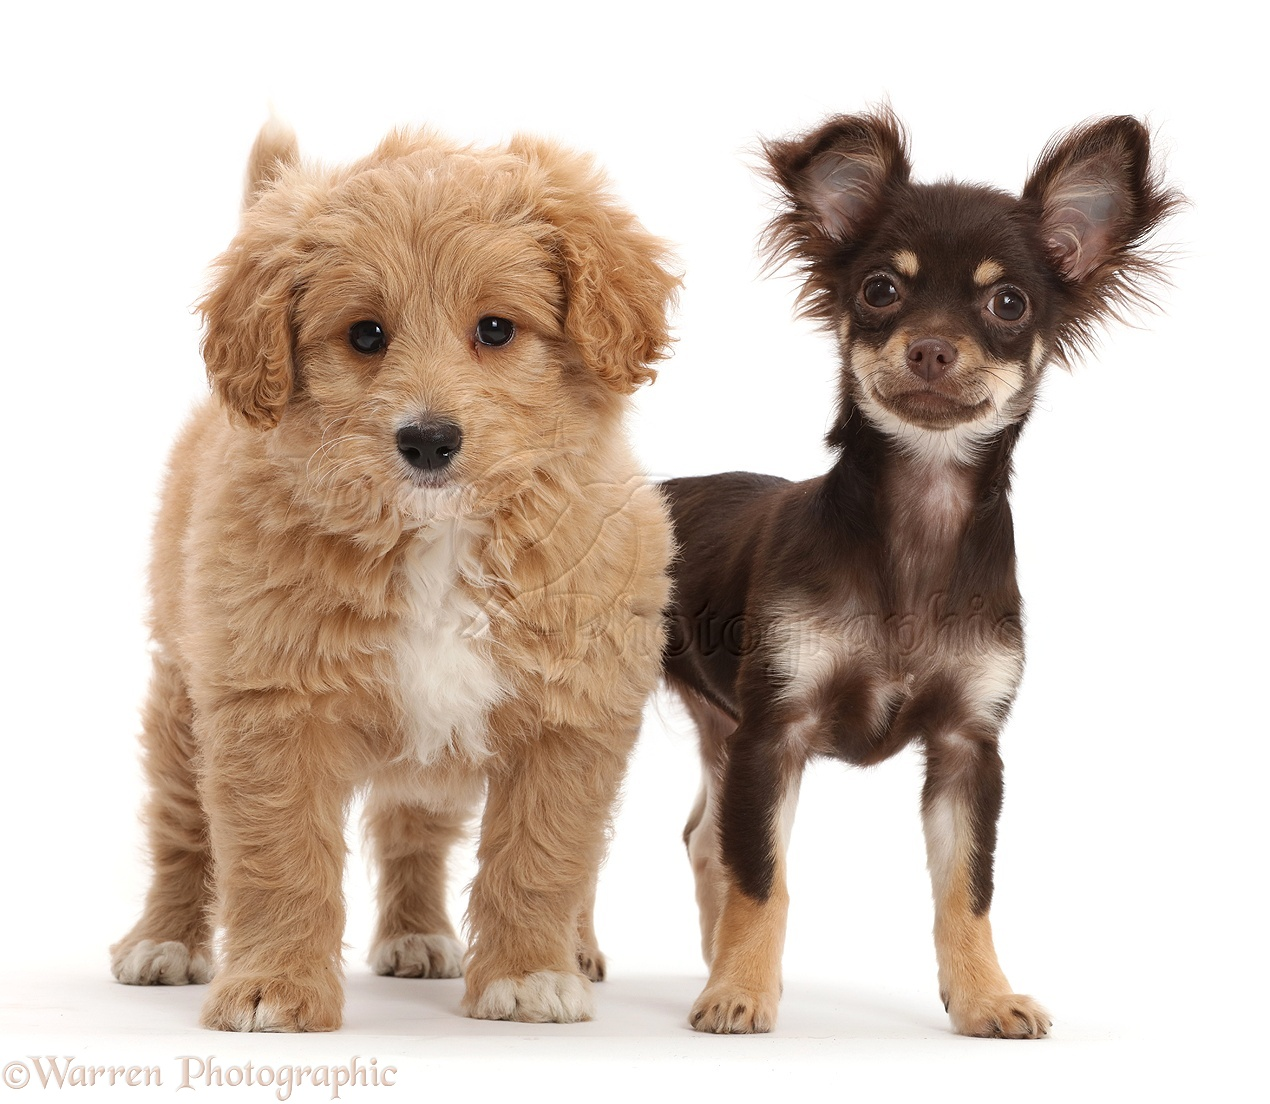 Dogs: Chocolate-and-tan Chihuahua with Cavapoo puppy photo - WP42970